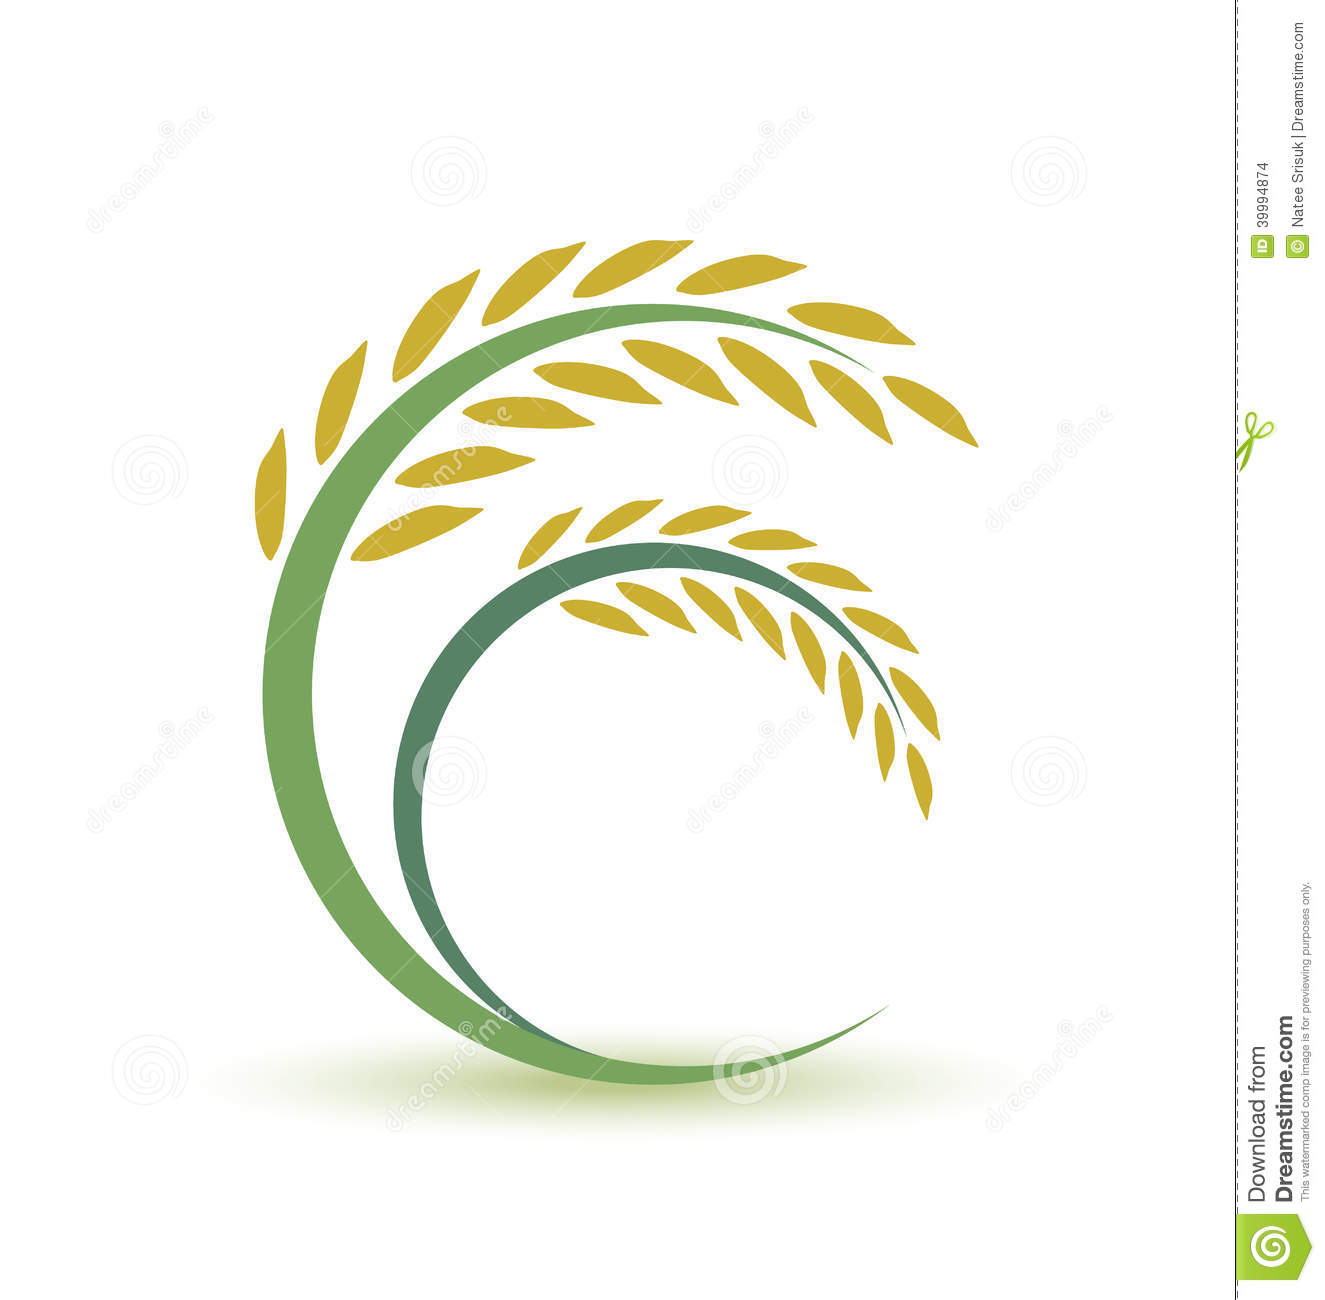 Rice design stock vector. Image of field, plant, natural ...